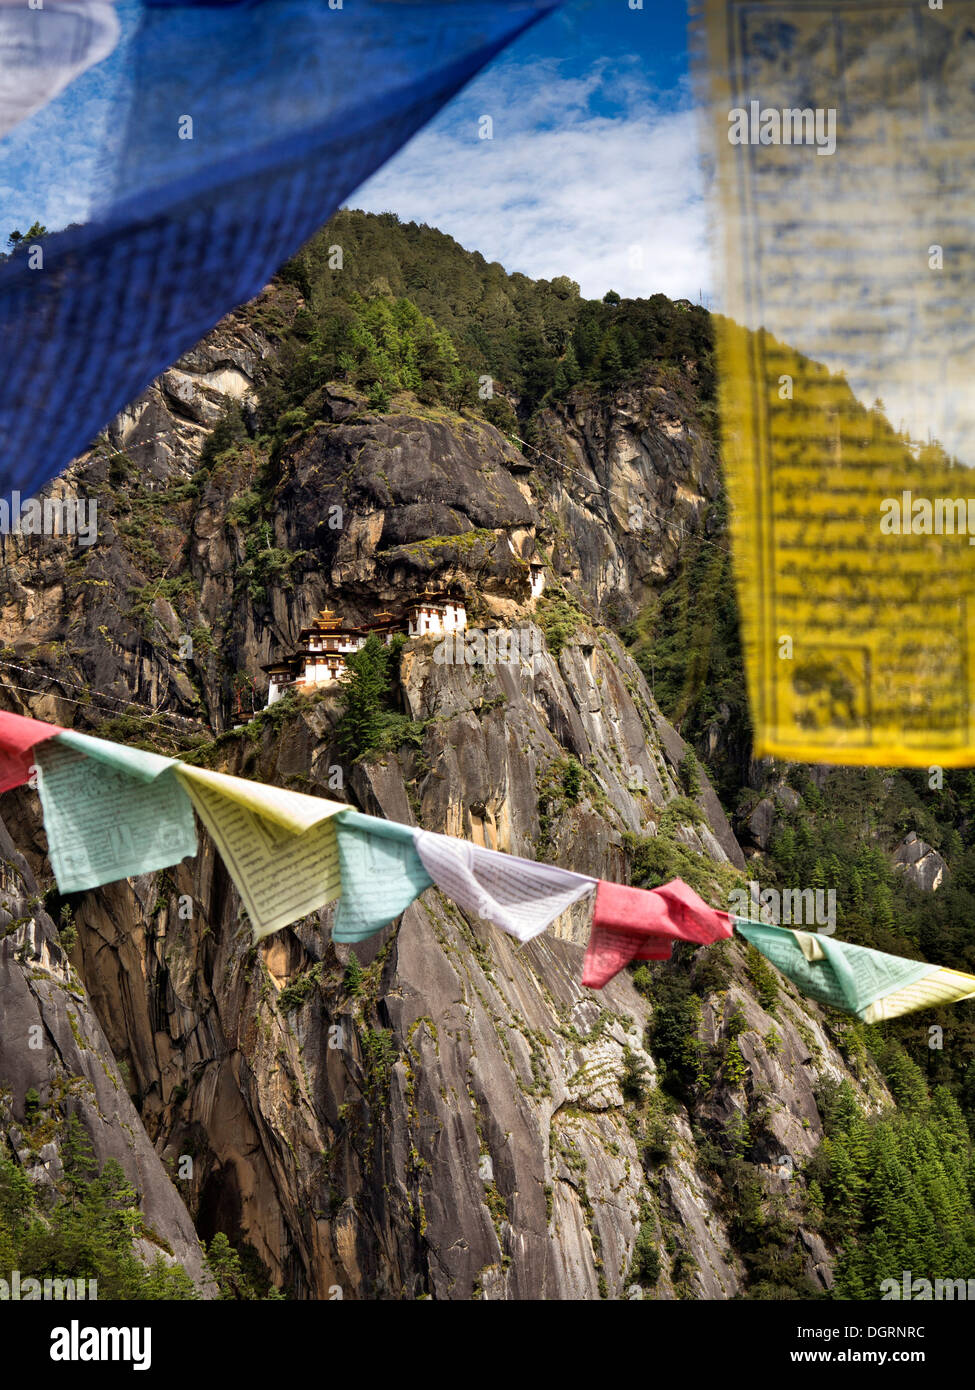 Bhutan, Paro valley, prayer flags at Taktsang Lhakang (Tiger's Nest) monastery viewpoint - Stock Image